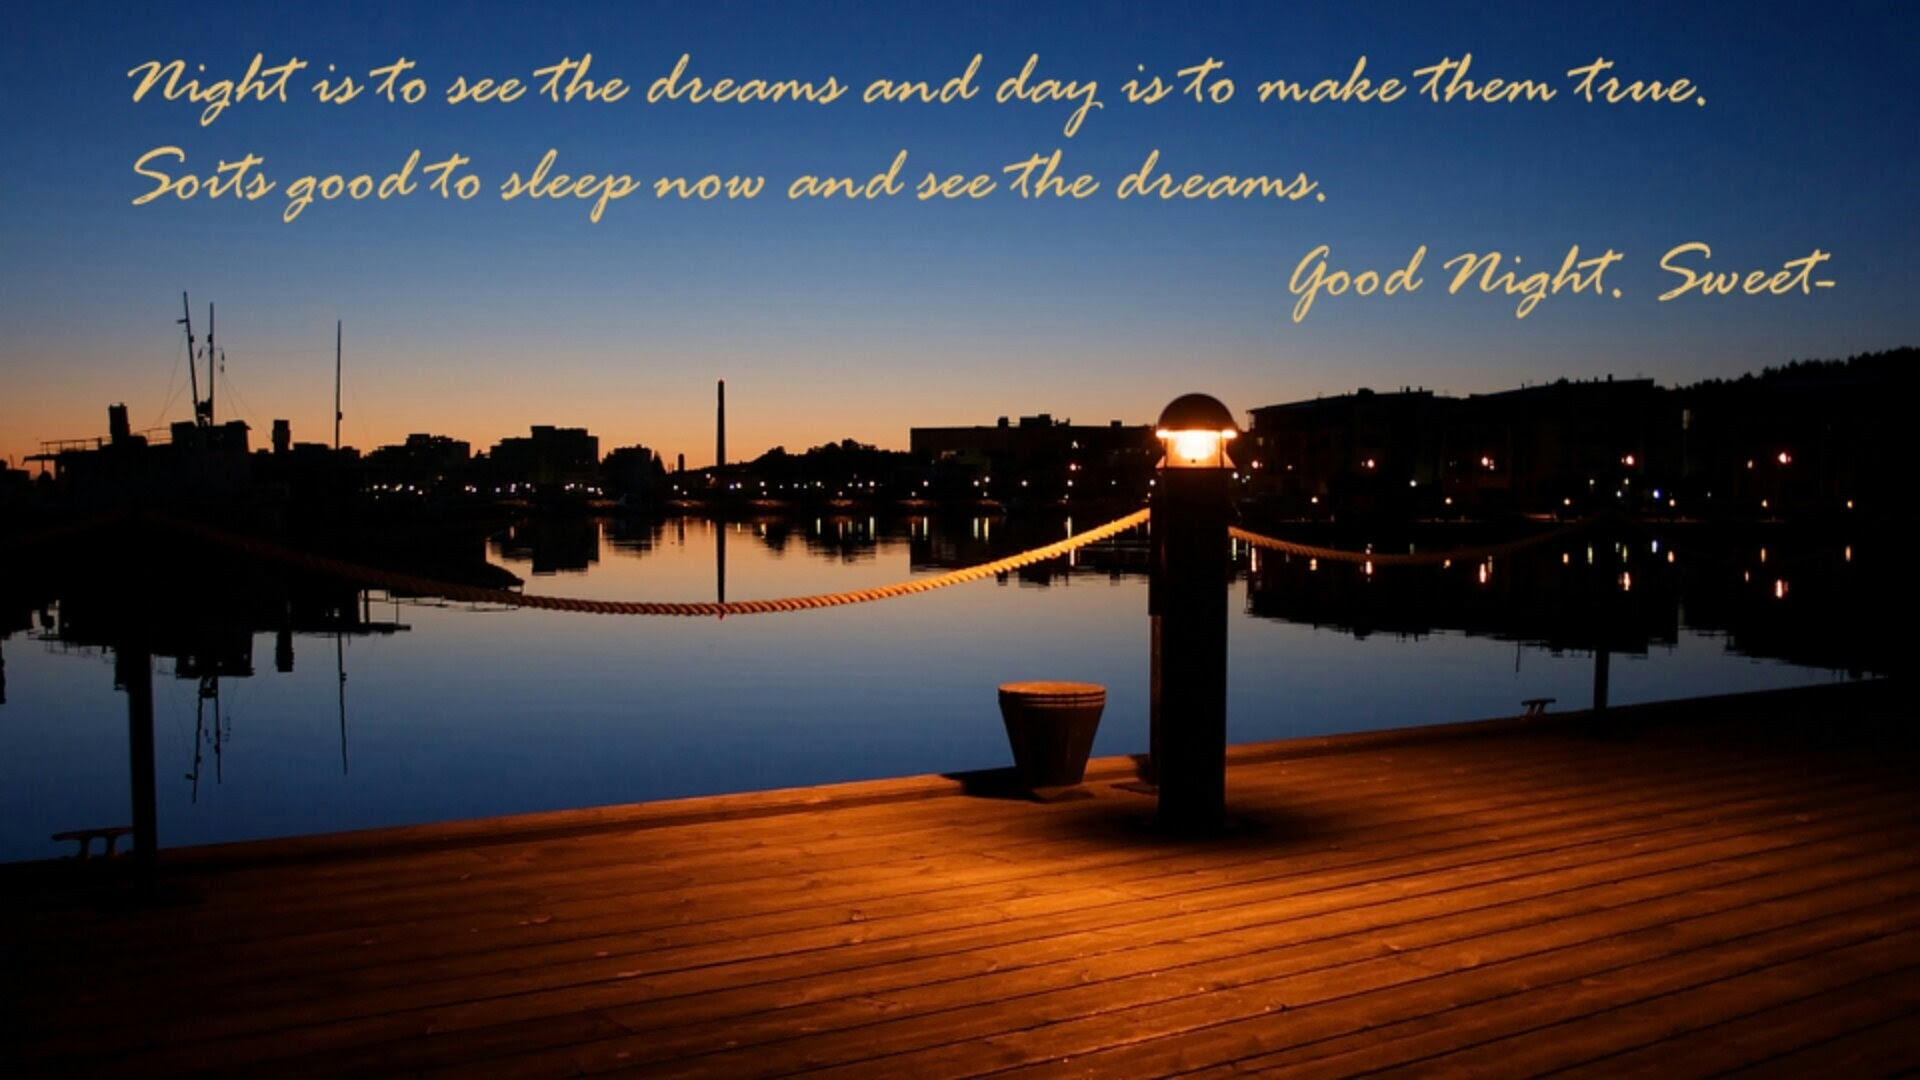 Beautiful Good Nights Quotes Wishes Hd Images Hd Wallpapers